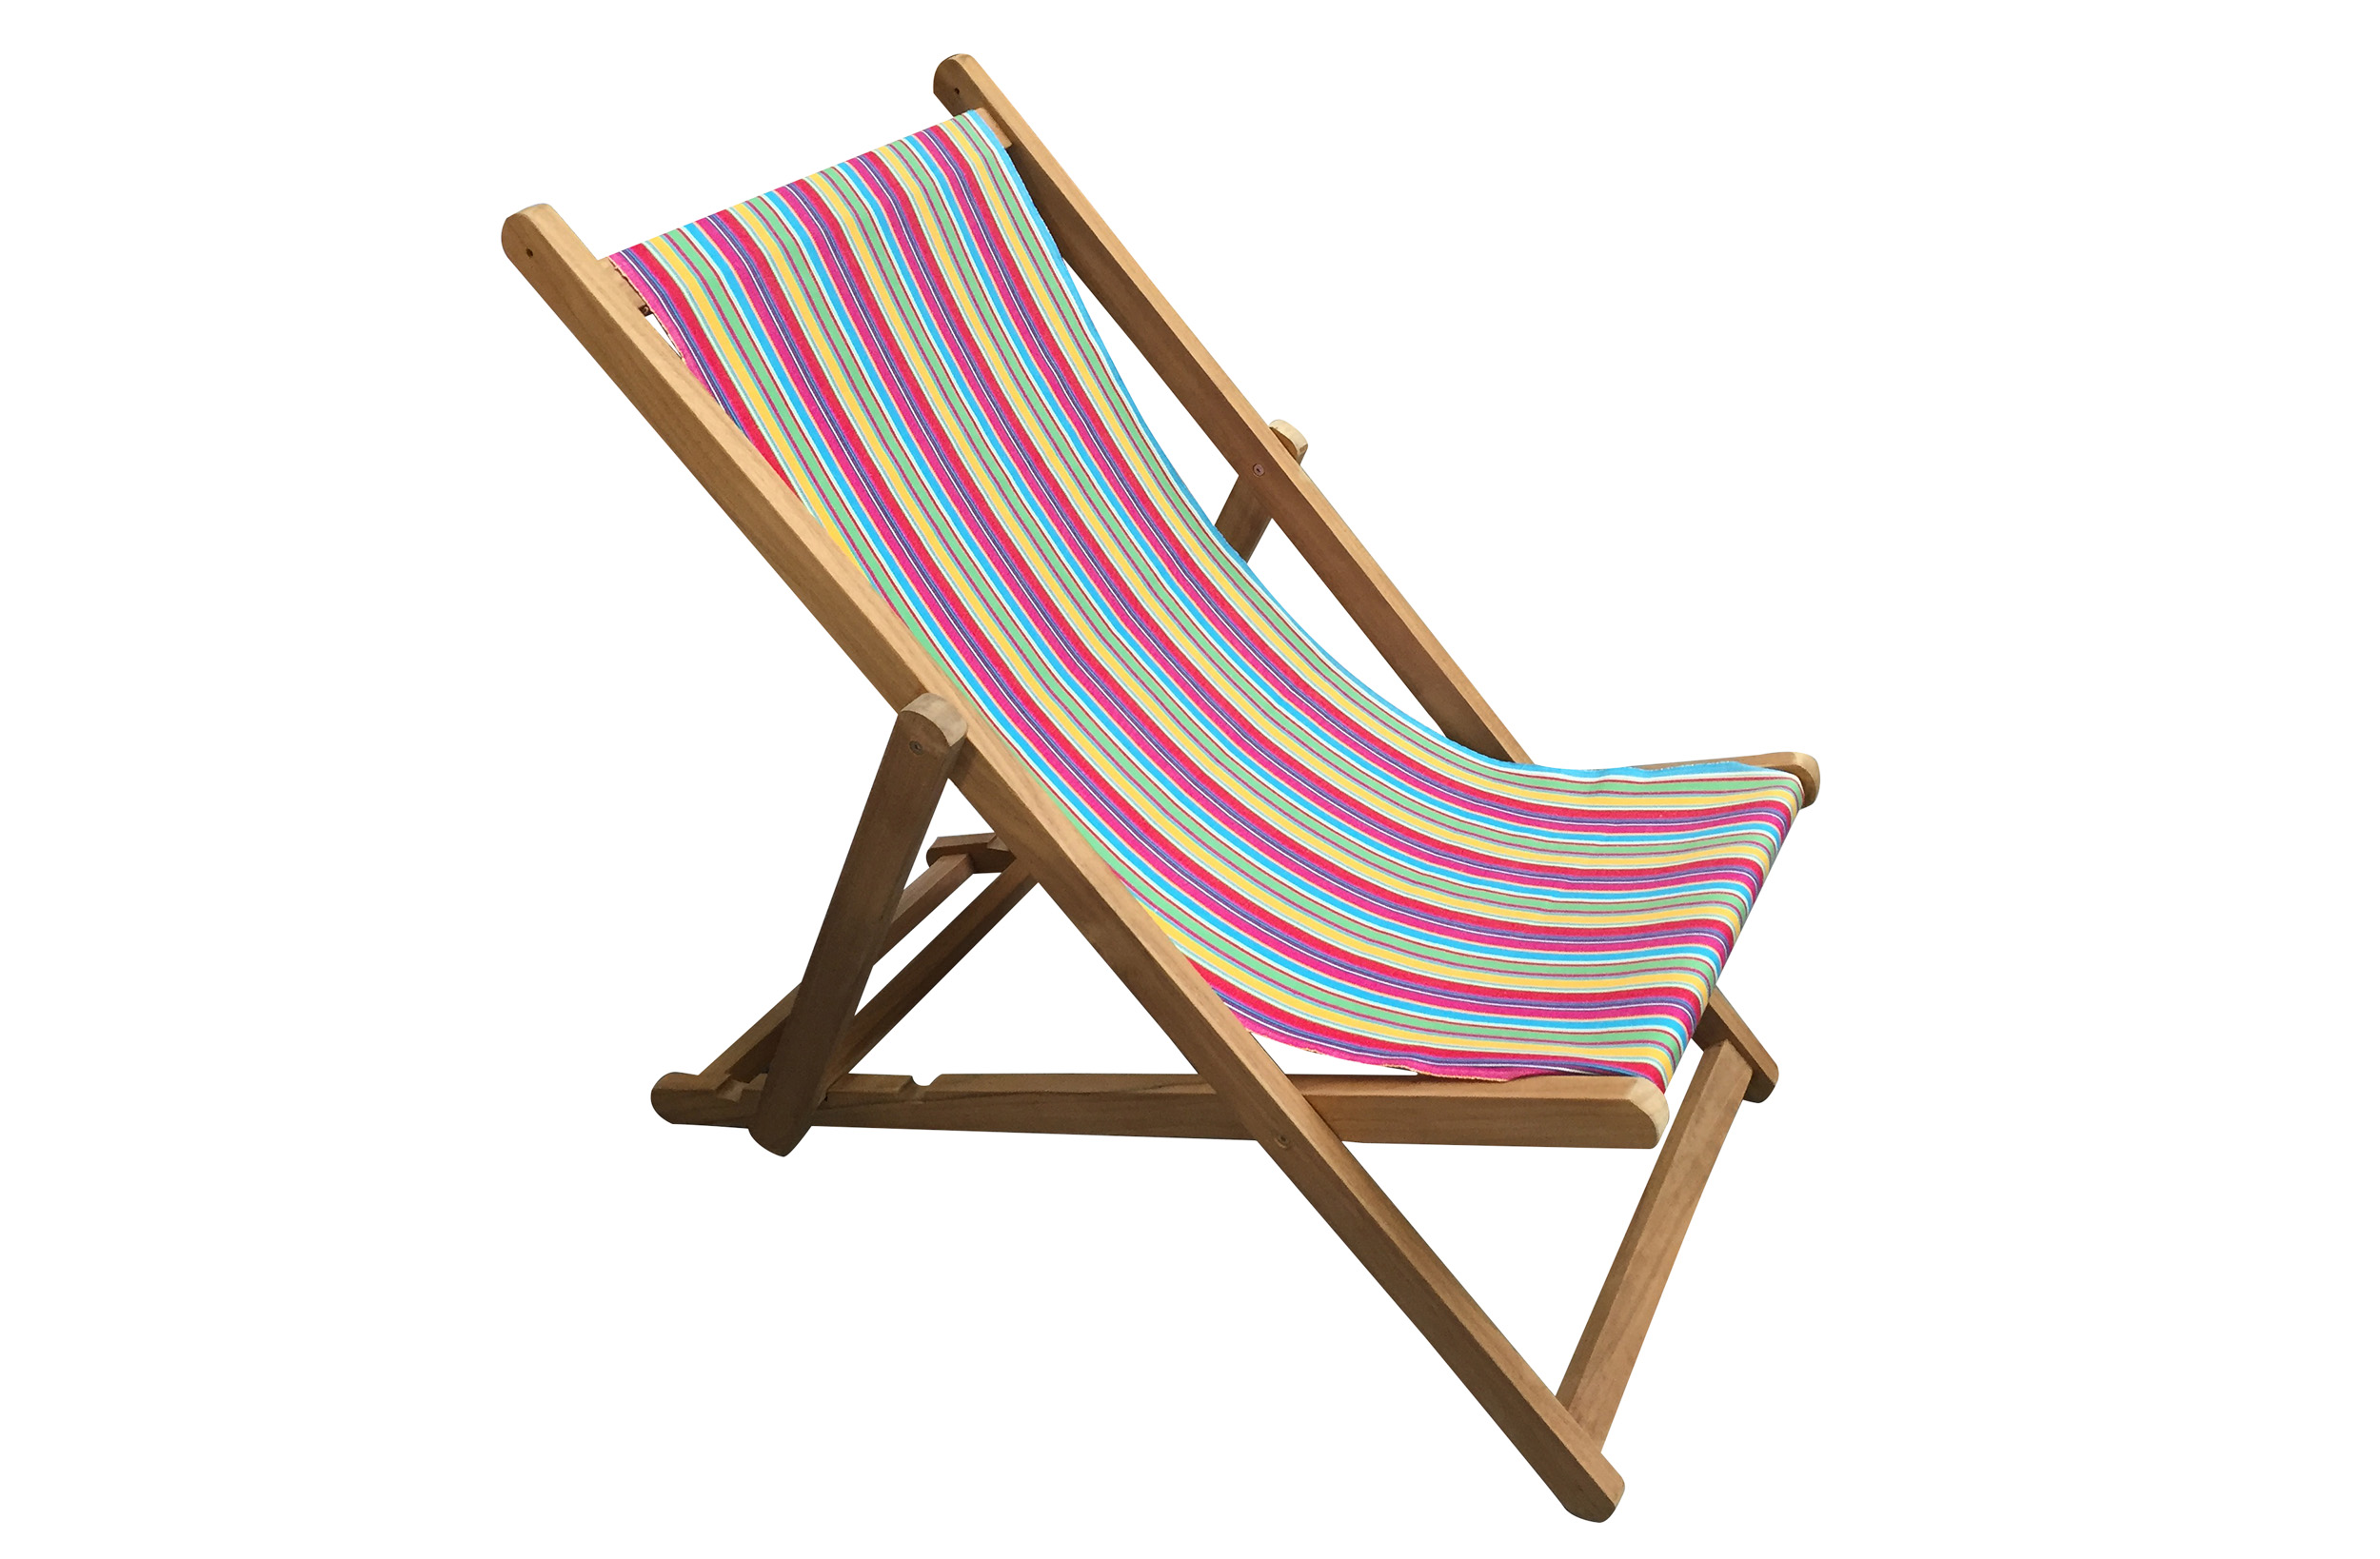 Pink Deckchairs | Wooden Folding Deck Chairs Karting Pink Stripes